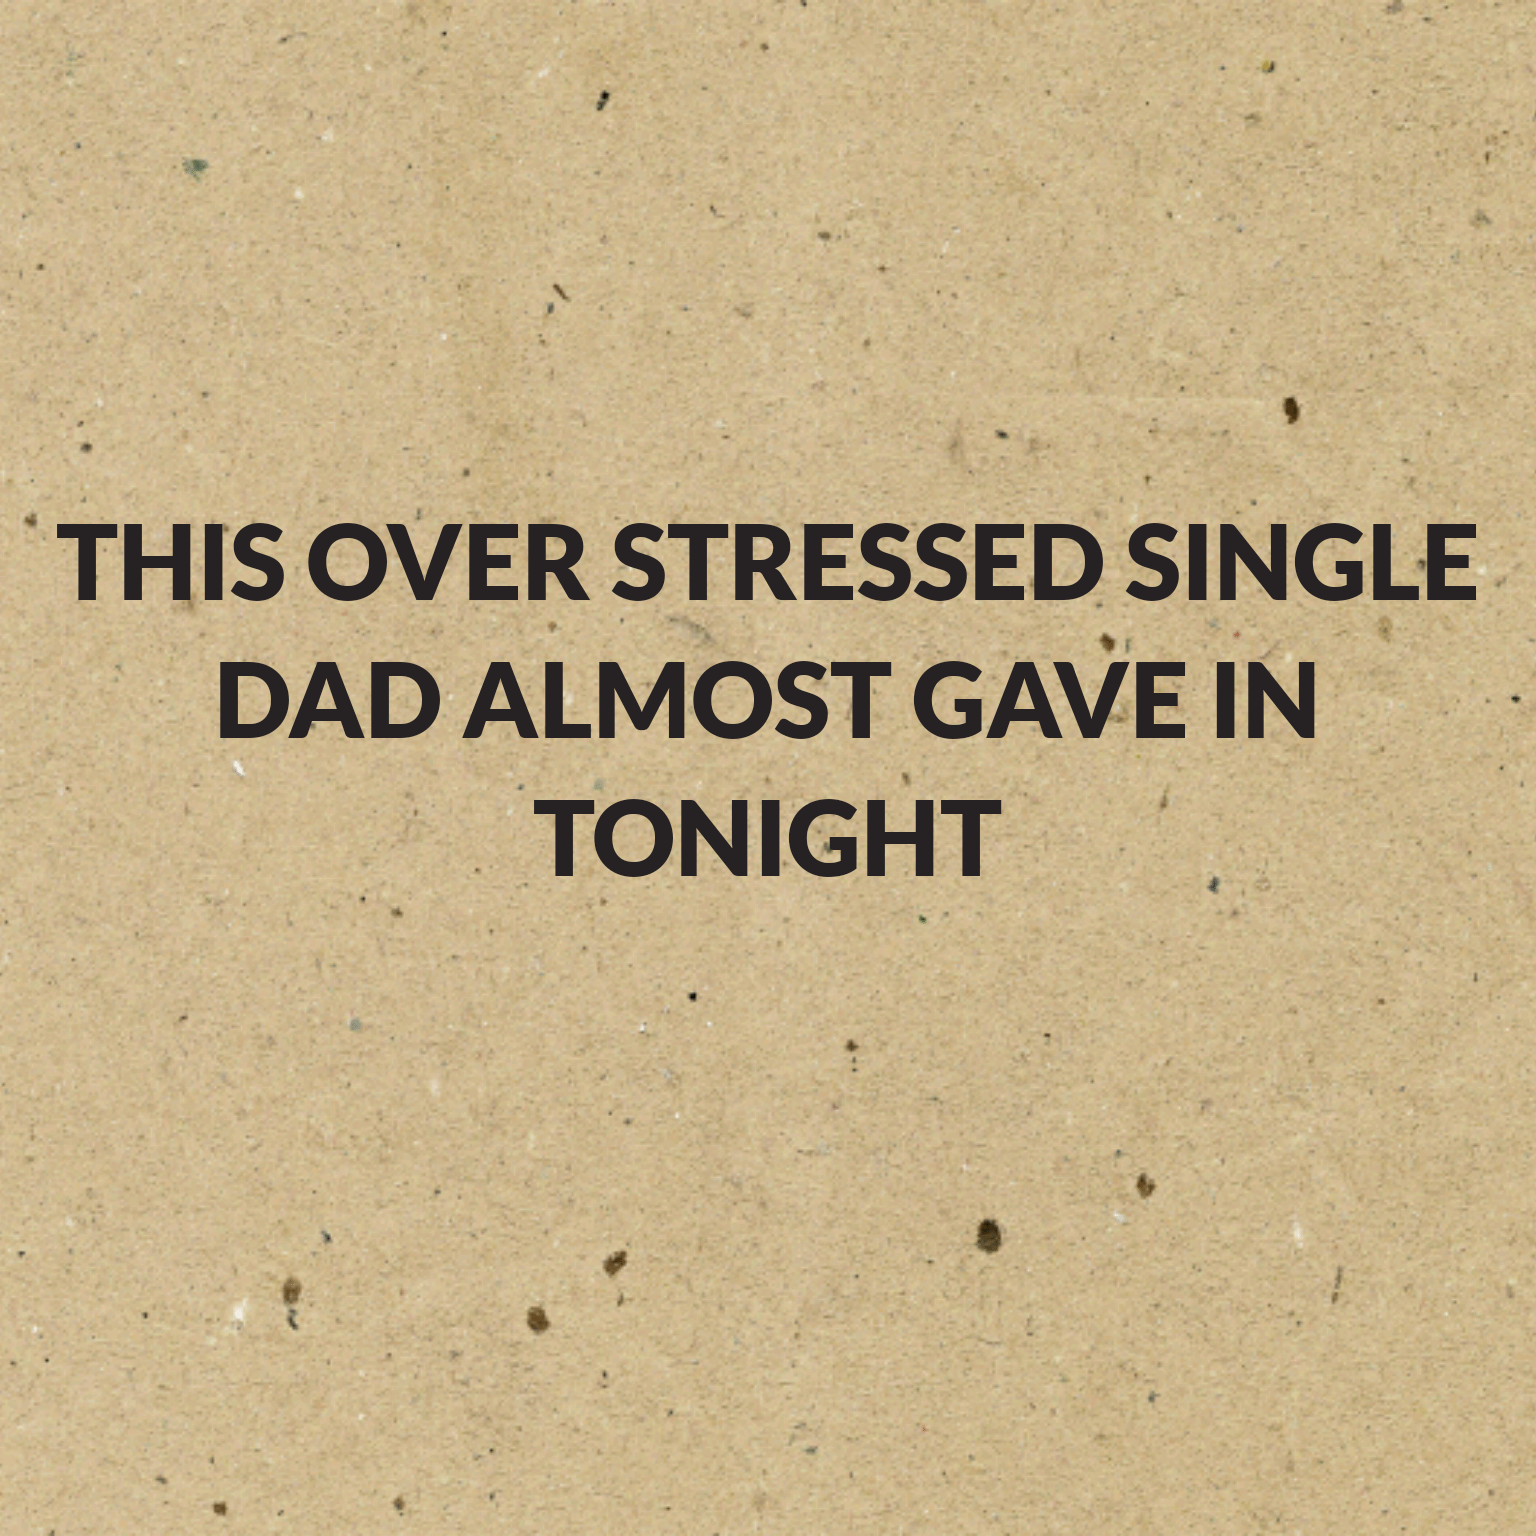 This over stressed single Dad almost gave in tonight